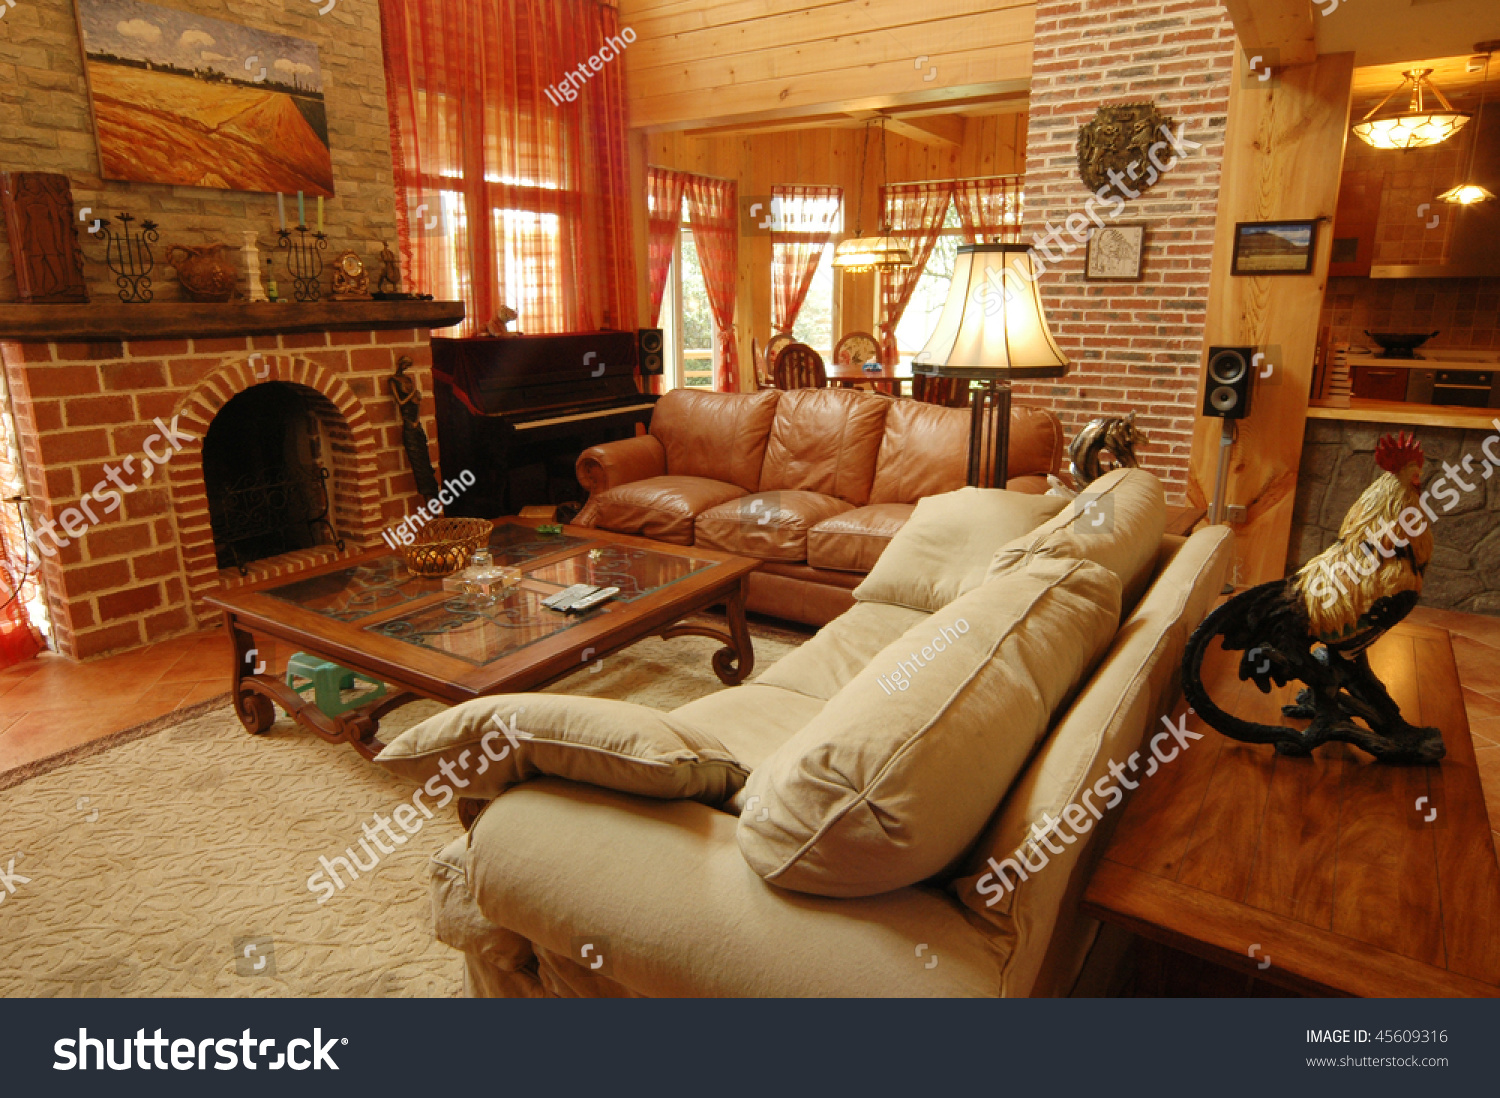 Living Room Western Style Stock Image | Download Now